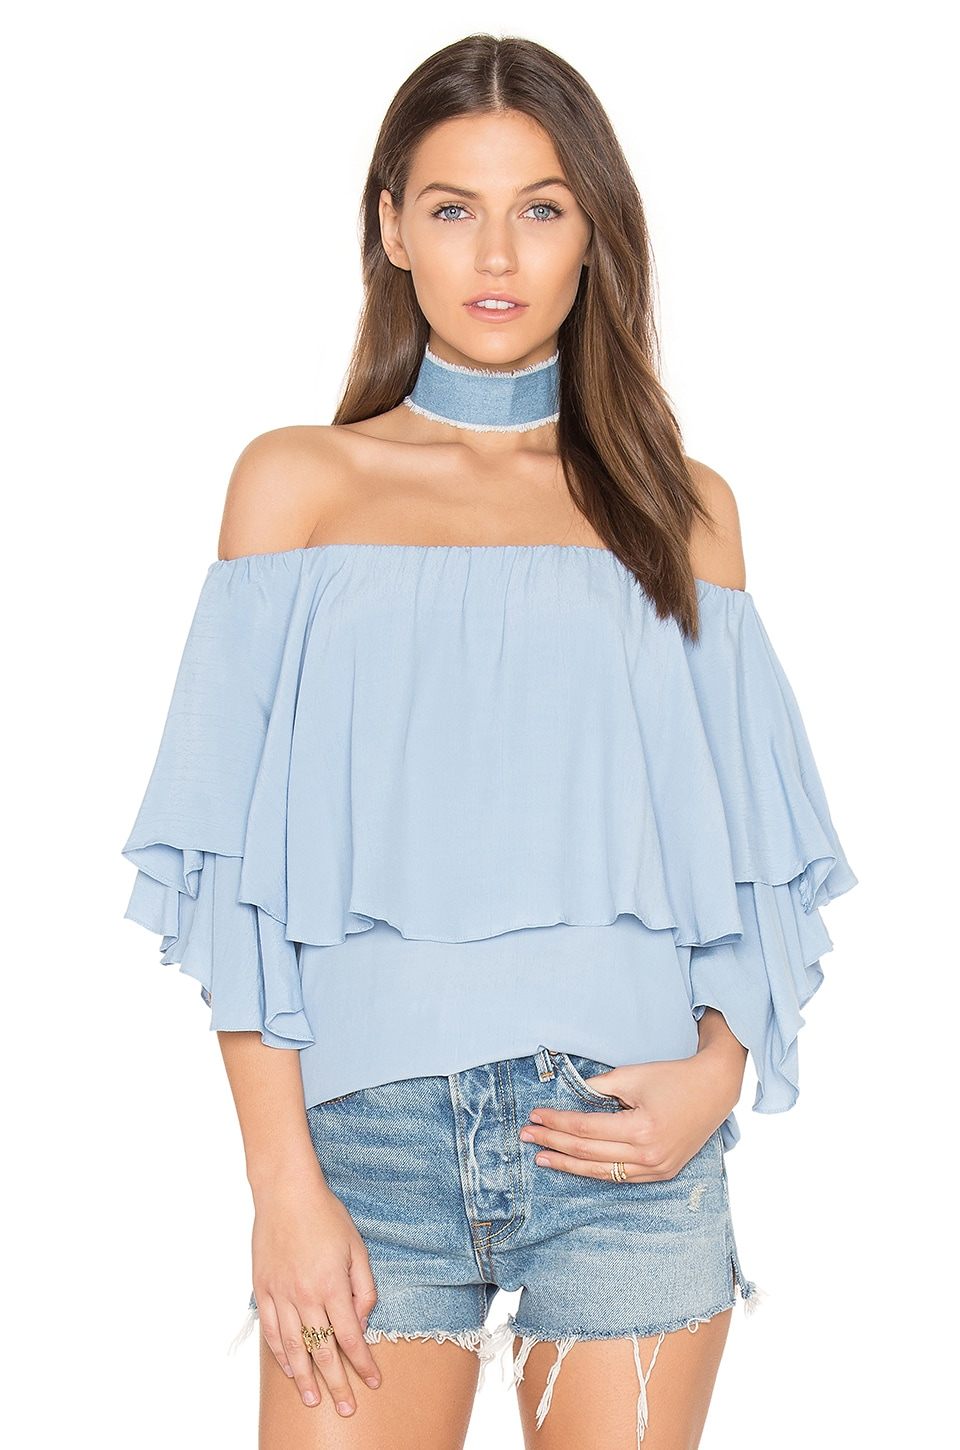 MLM Label Maison Shoulder Top in Arctic Ice Blue